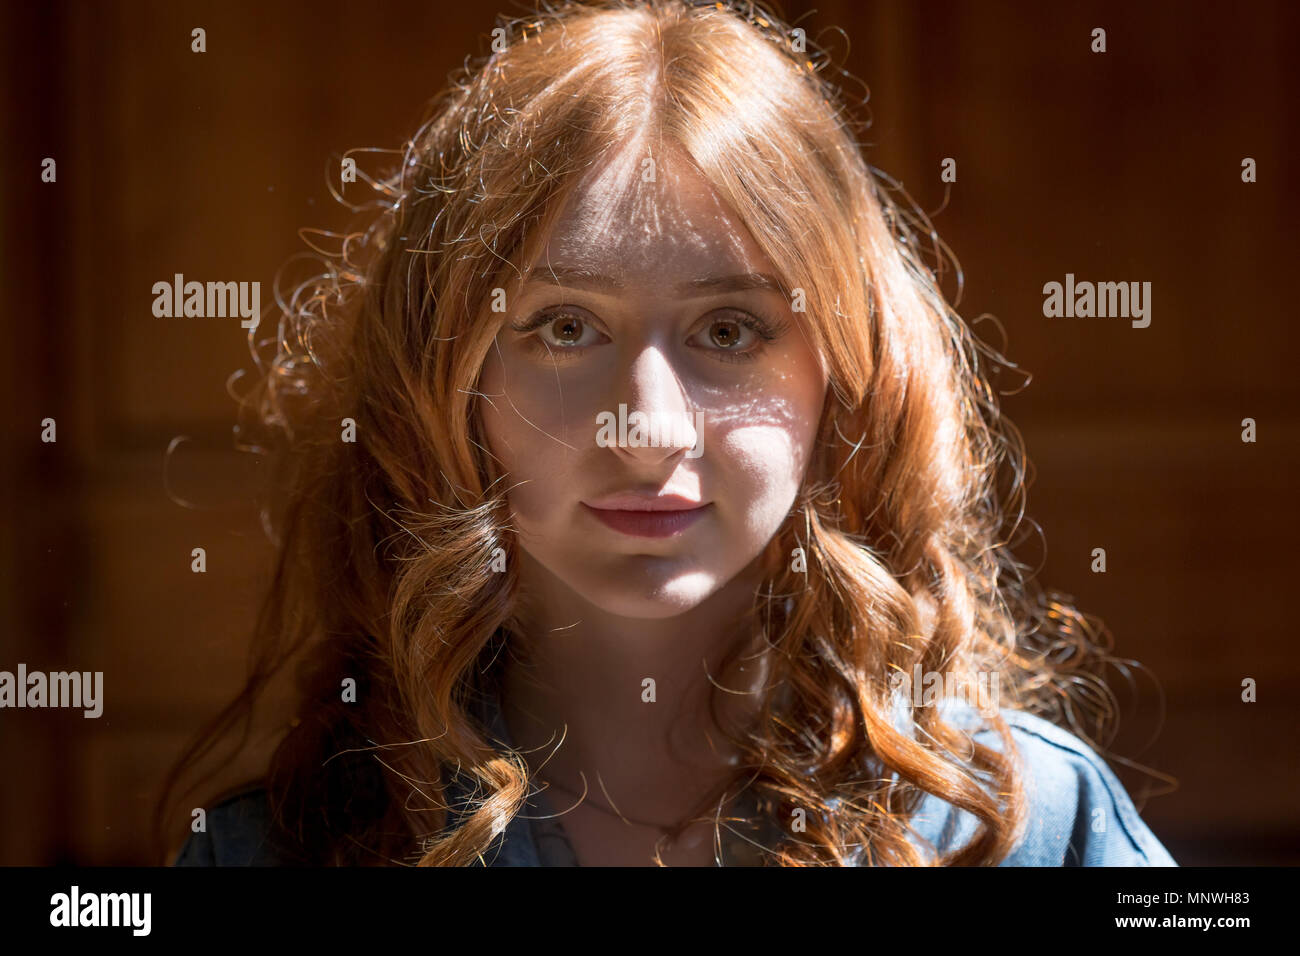 redhead hair london